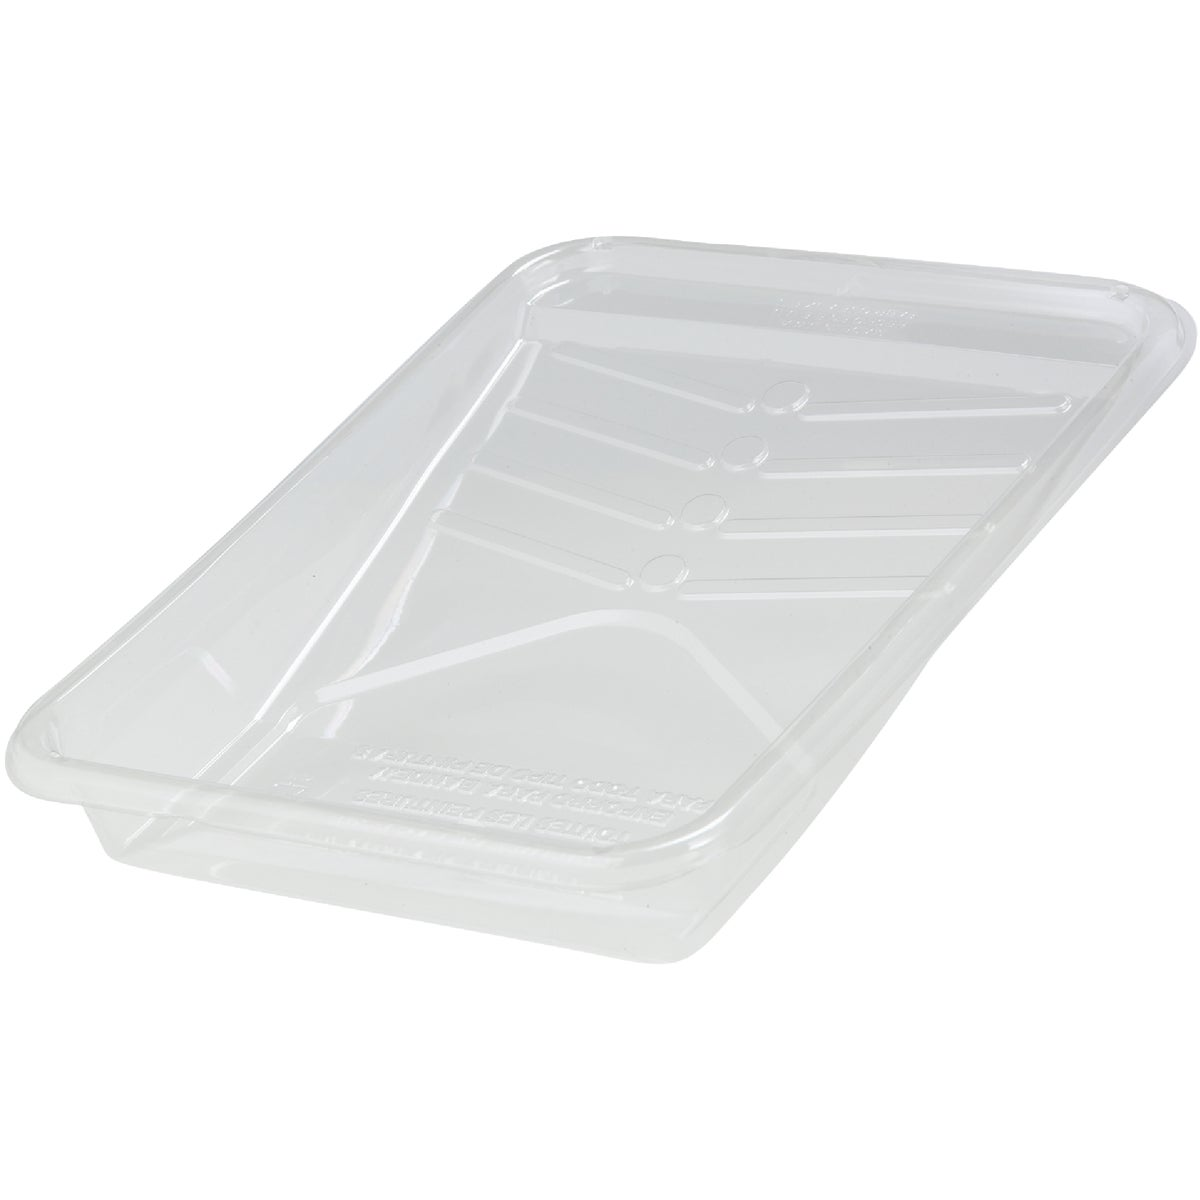 "9"" PLASTIC TRAY LINER - EP50262 by Shur Line"